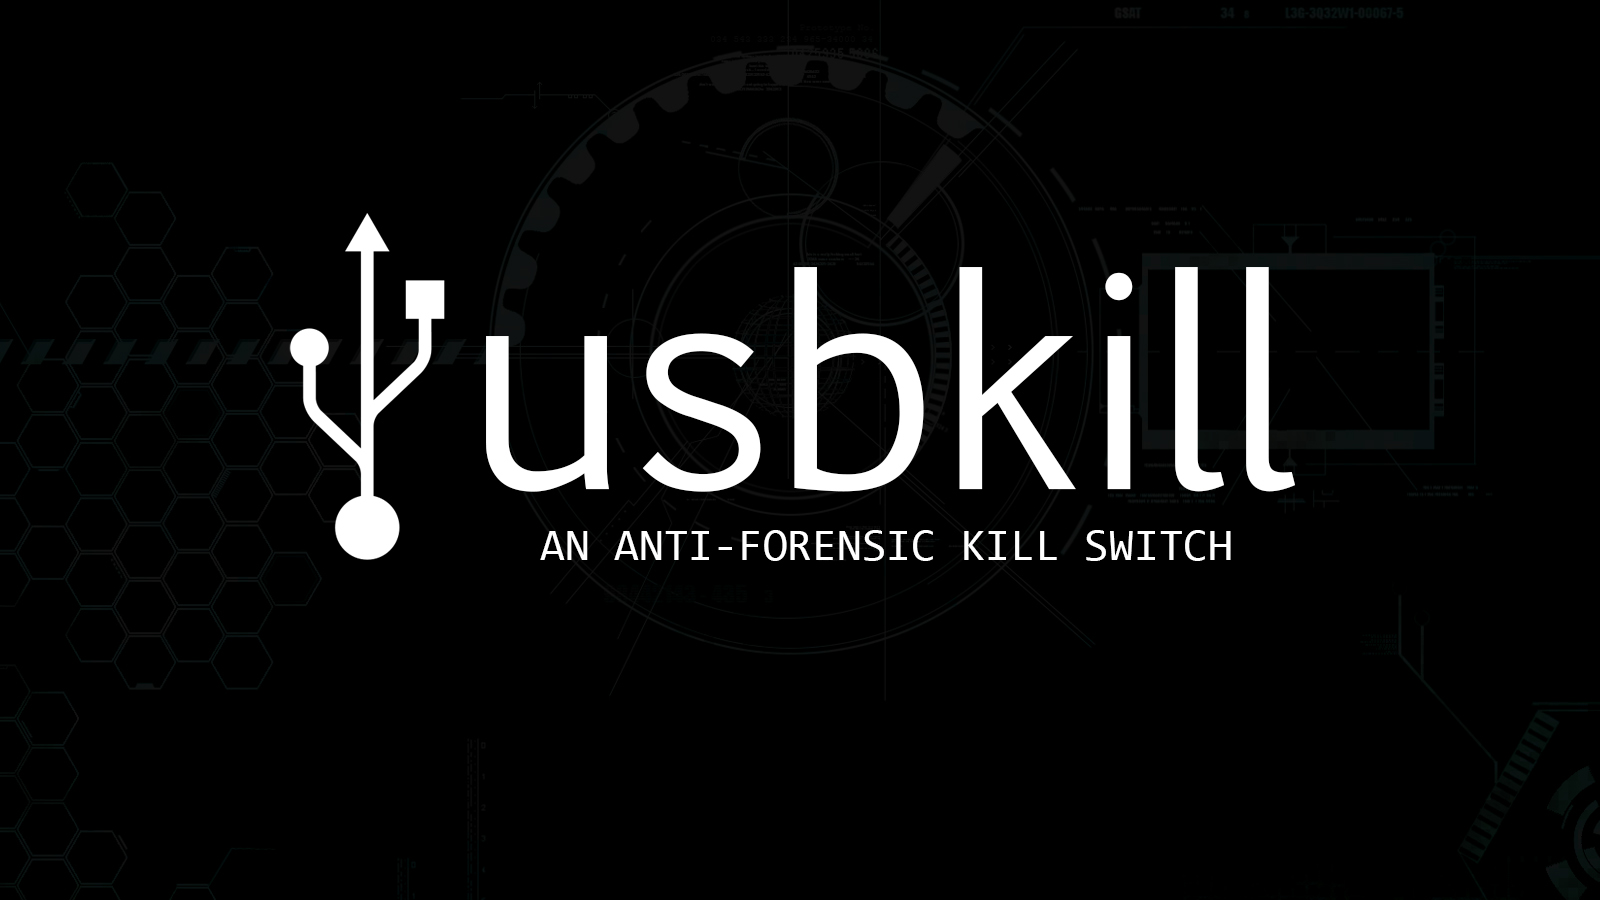 usbkill - An Anti-Forensic Kill Switch